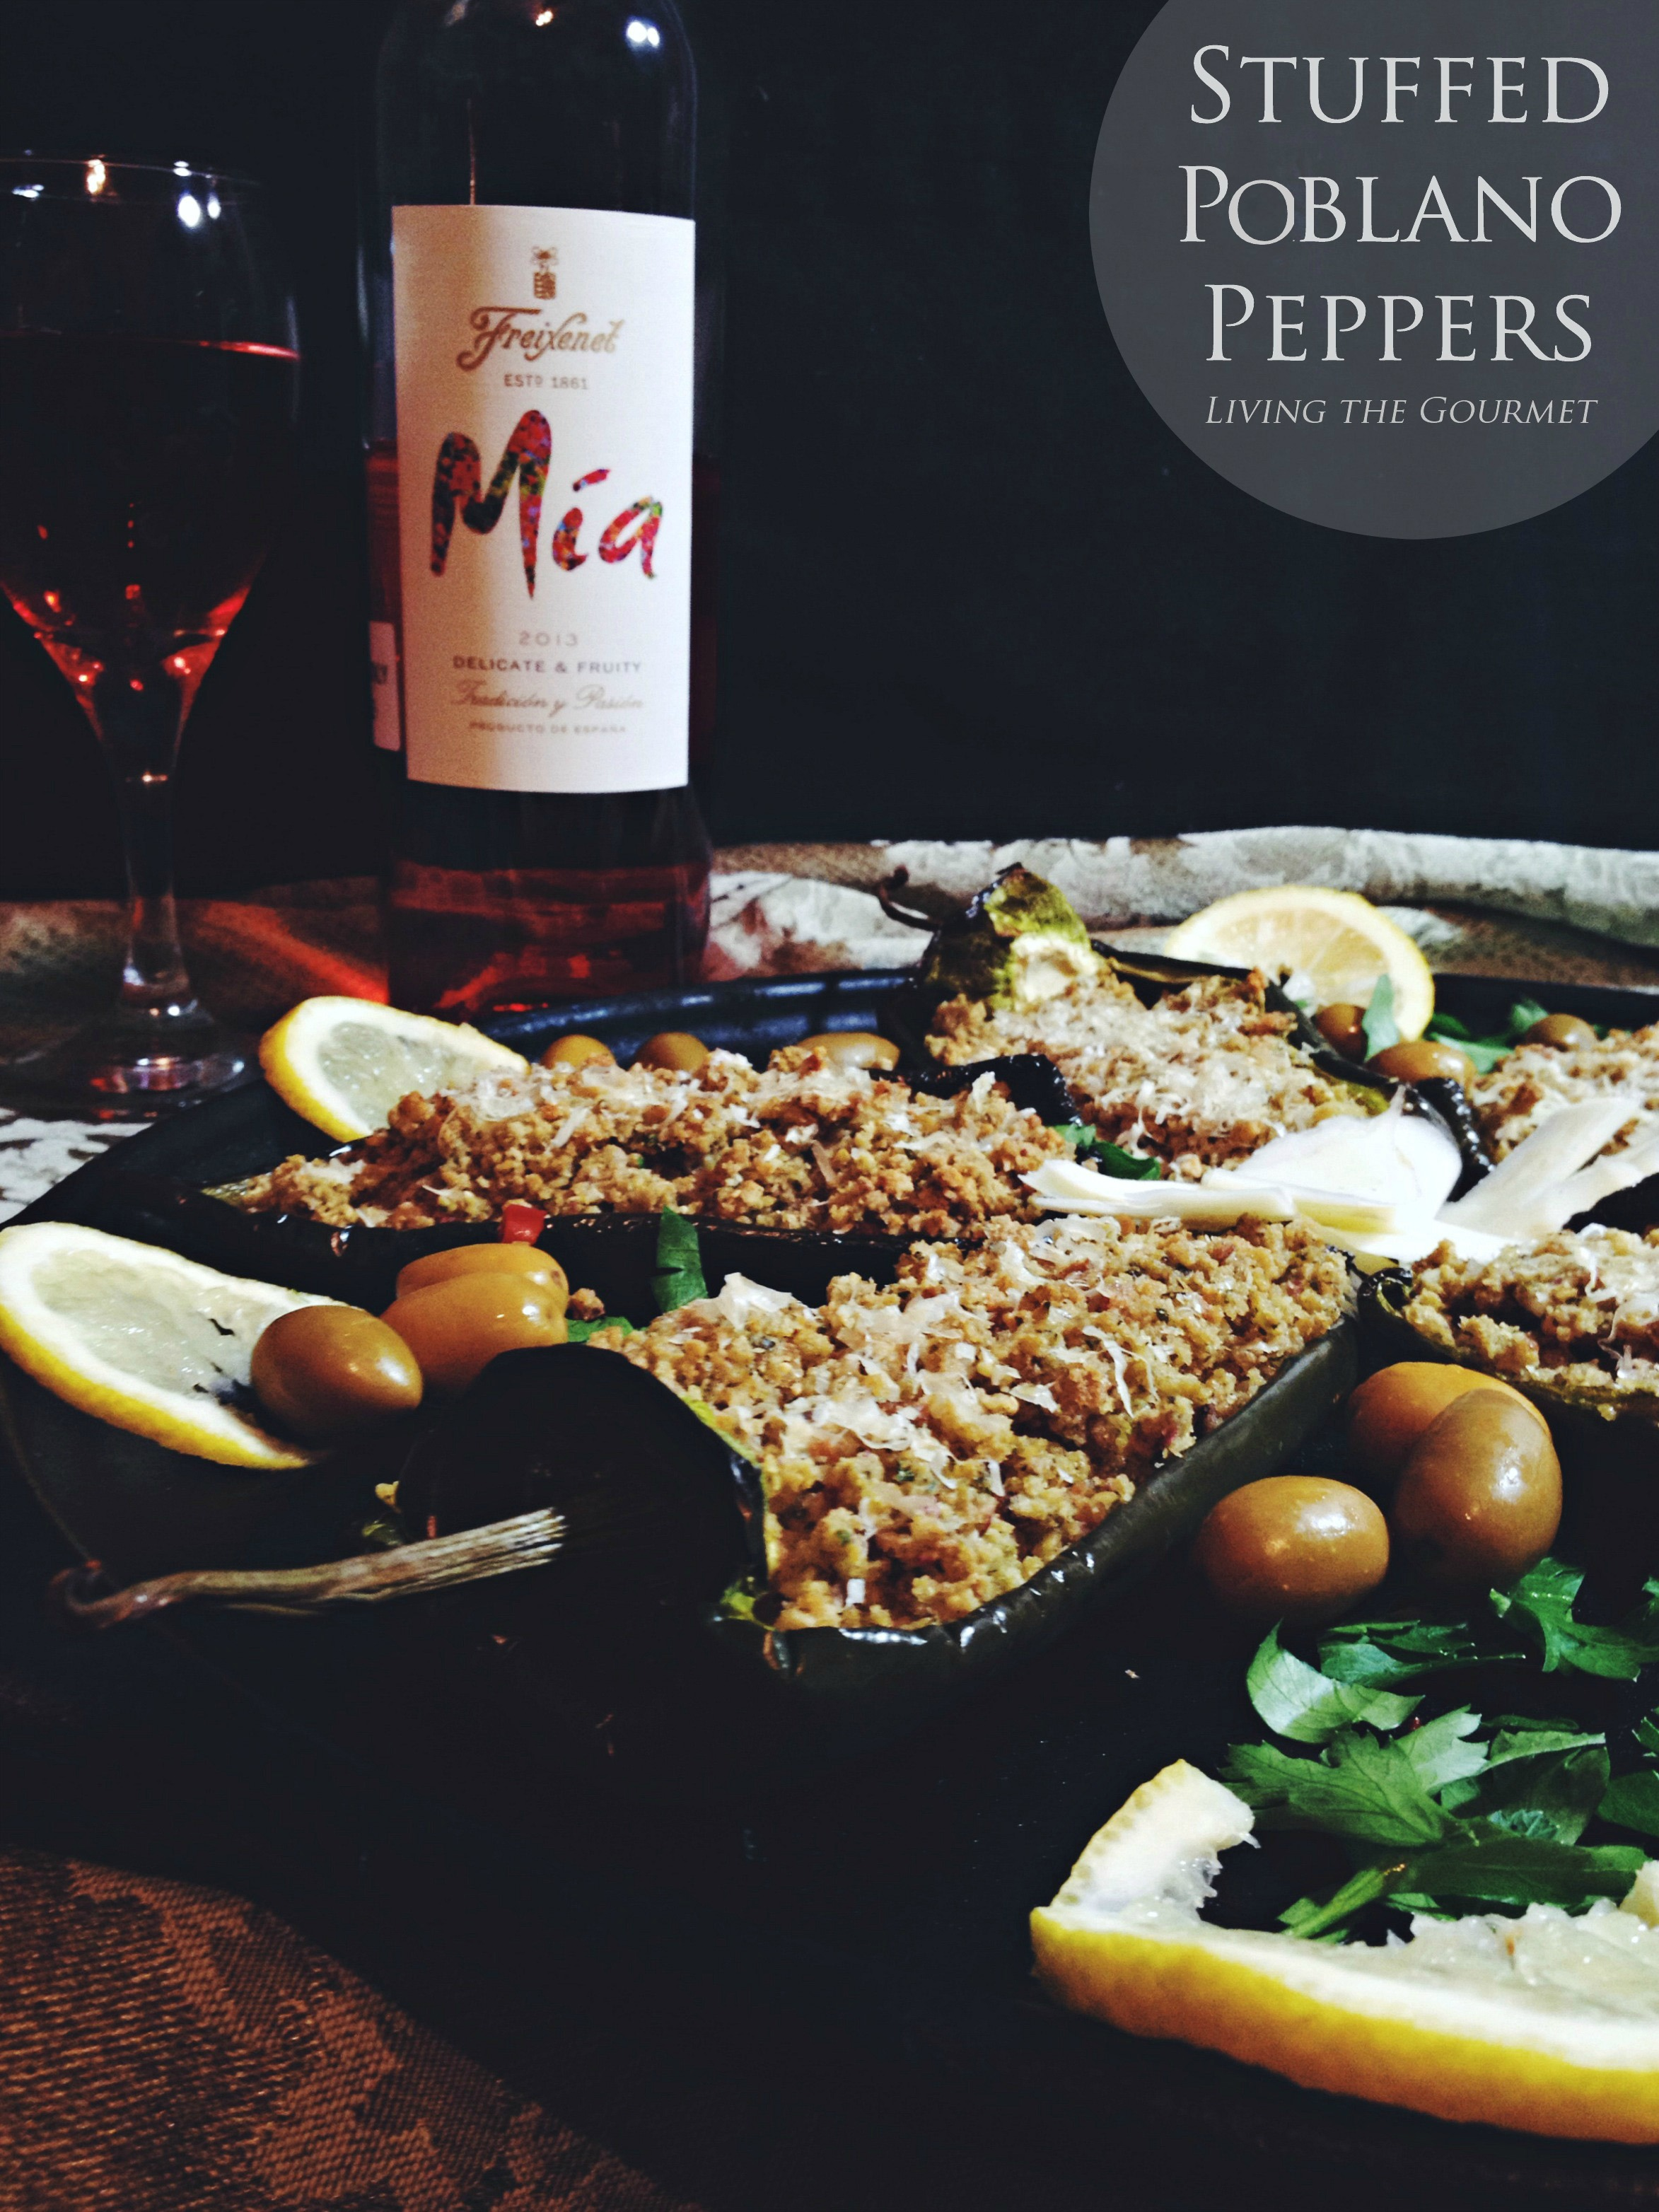 Living the Gourmet: Stuffed Poblano Peppers with Mia Rosé